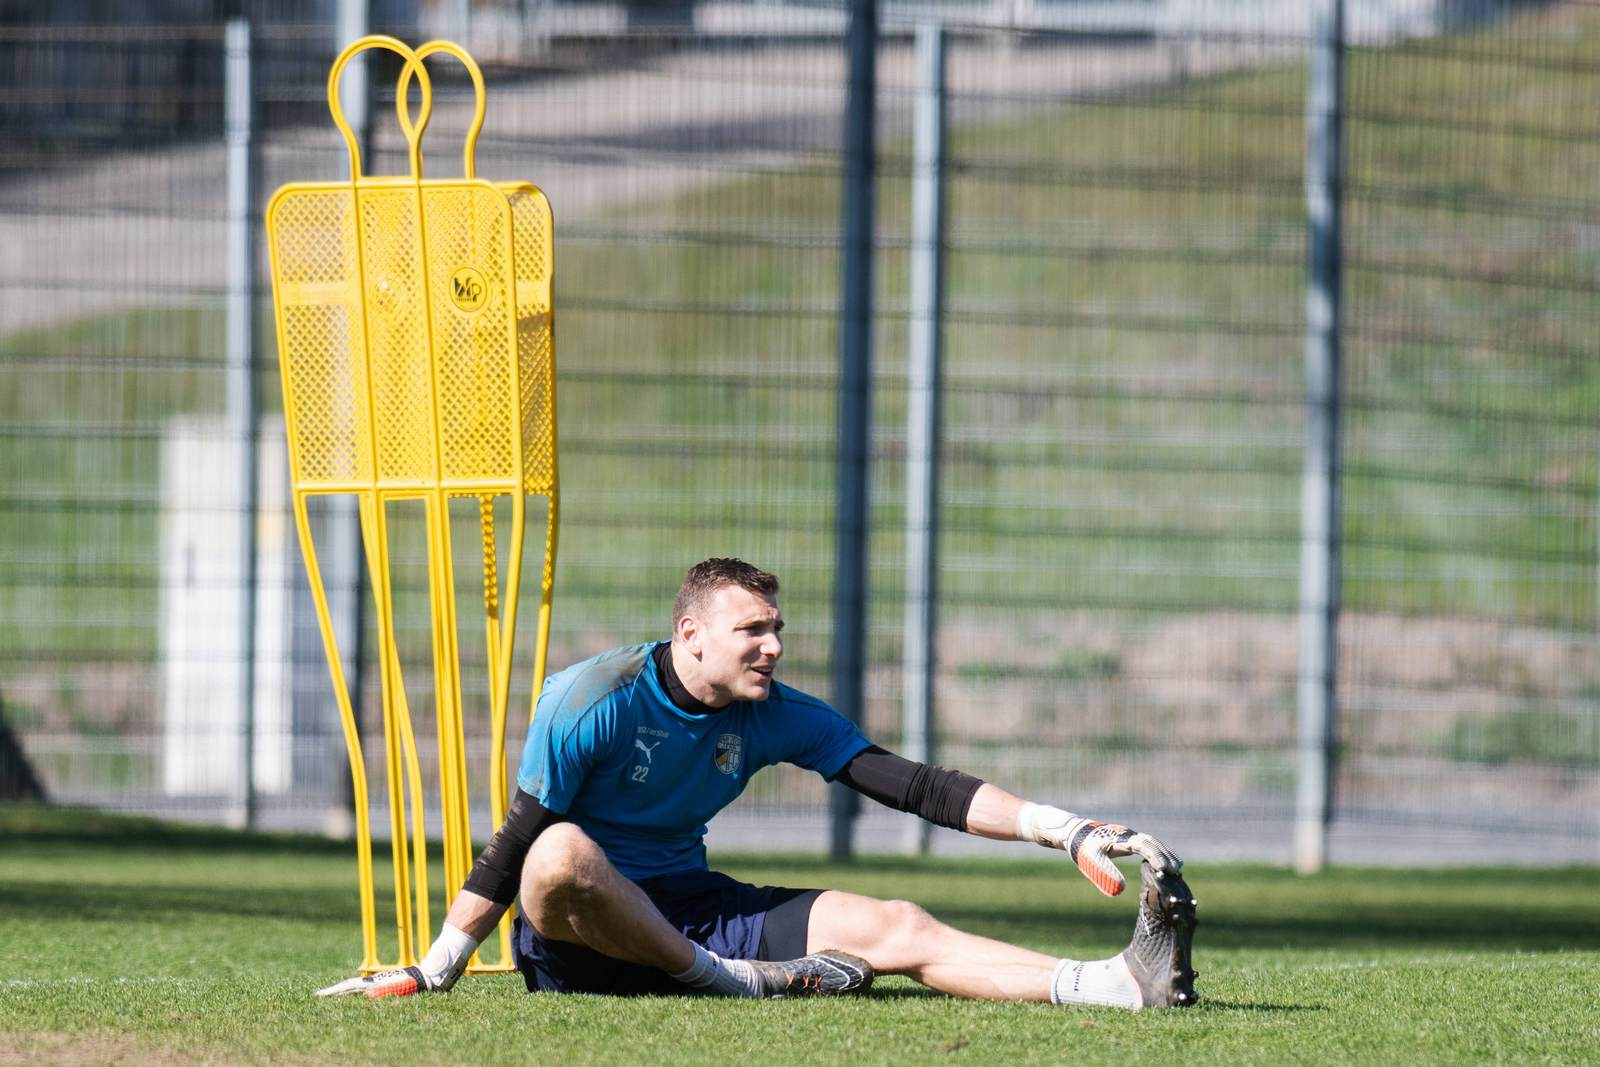 Jo Coppens im Training des FC Carl Zeiss Jena